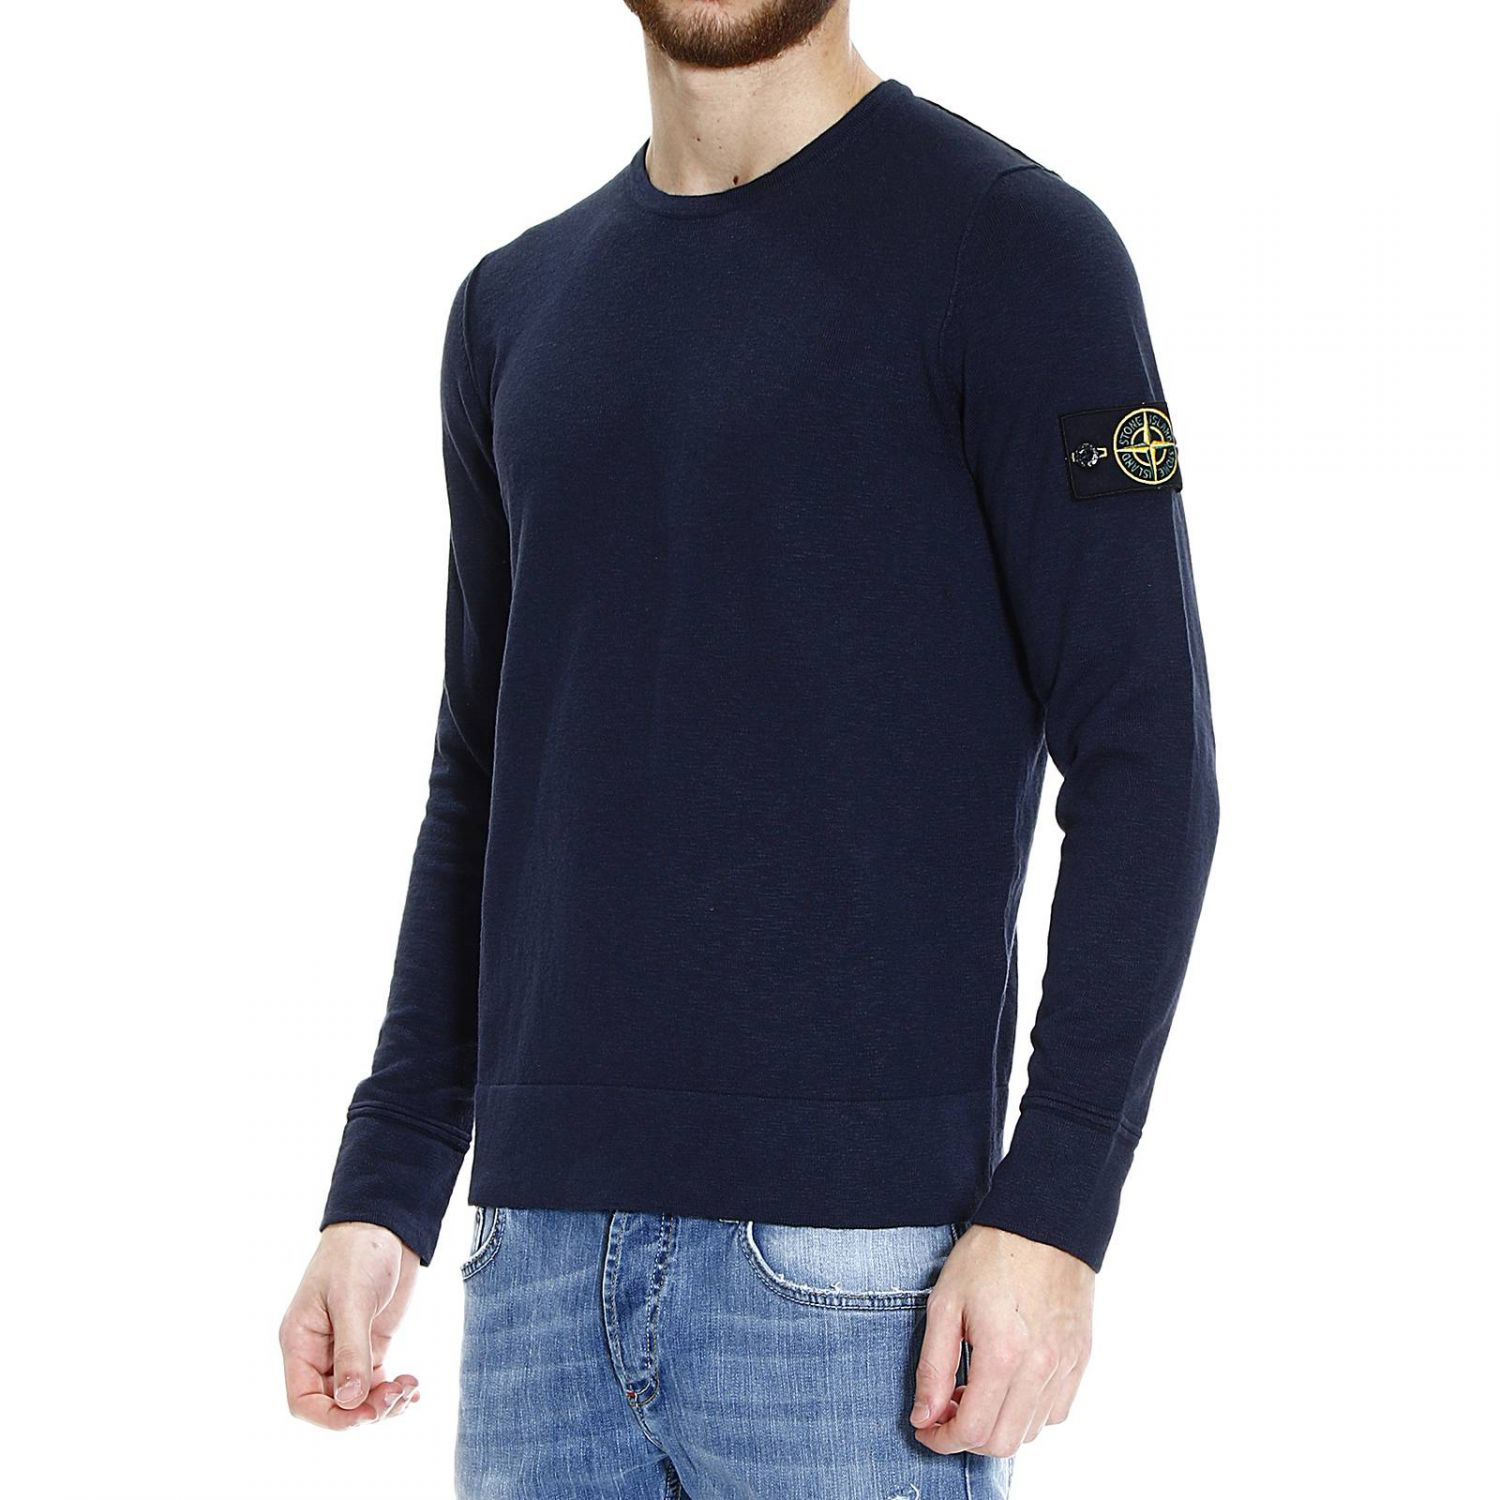 Sweater Knit : Lyst stone island sweater knit crew neck cotton slubbed